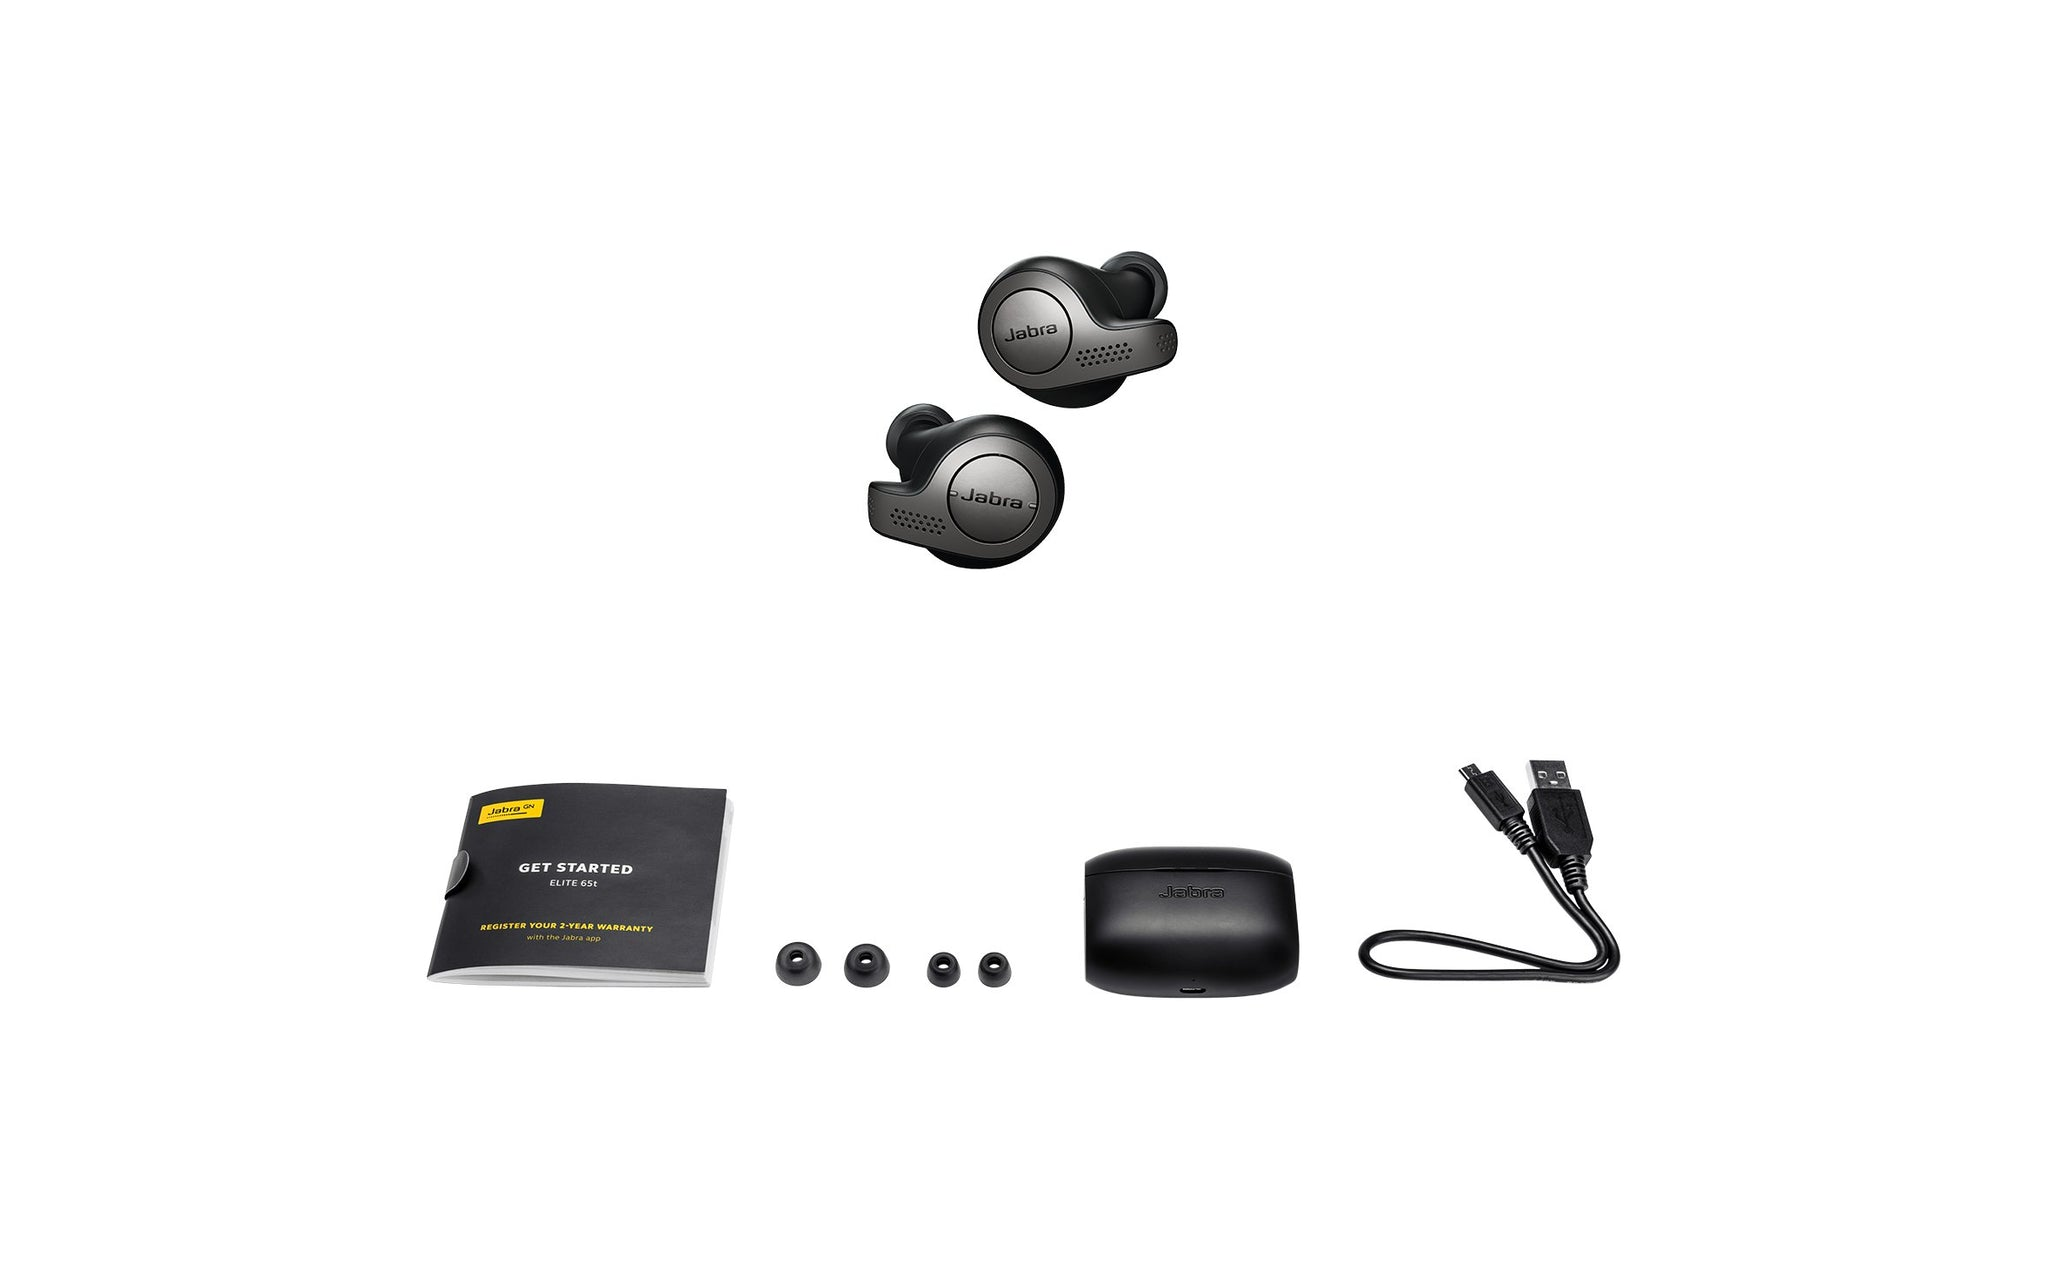 Jabra Elite 65t Earbuds - Alexa Enabled, True Wireless Earbuds with Charging Case, Titanium Black - Bluetooth Earbuds Engineered for The Best True Wireless Calls and Music Experience